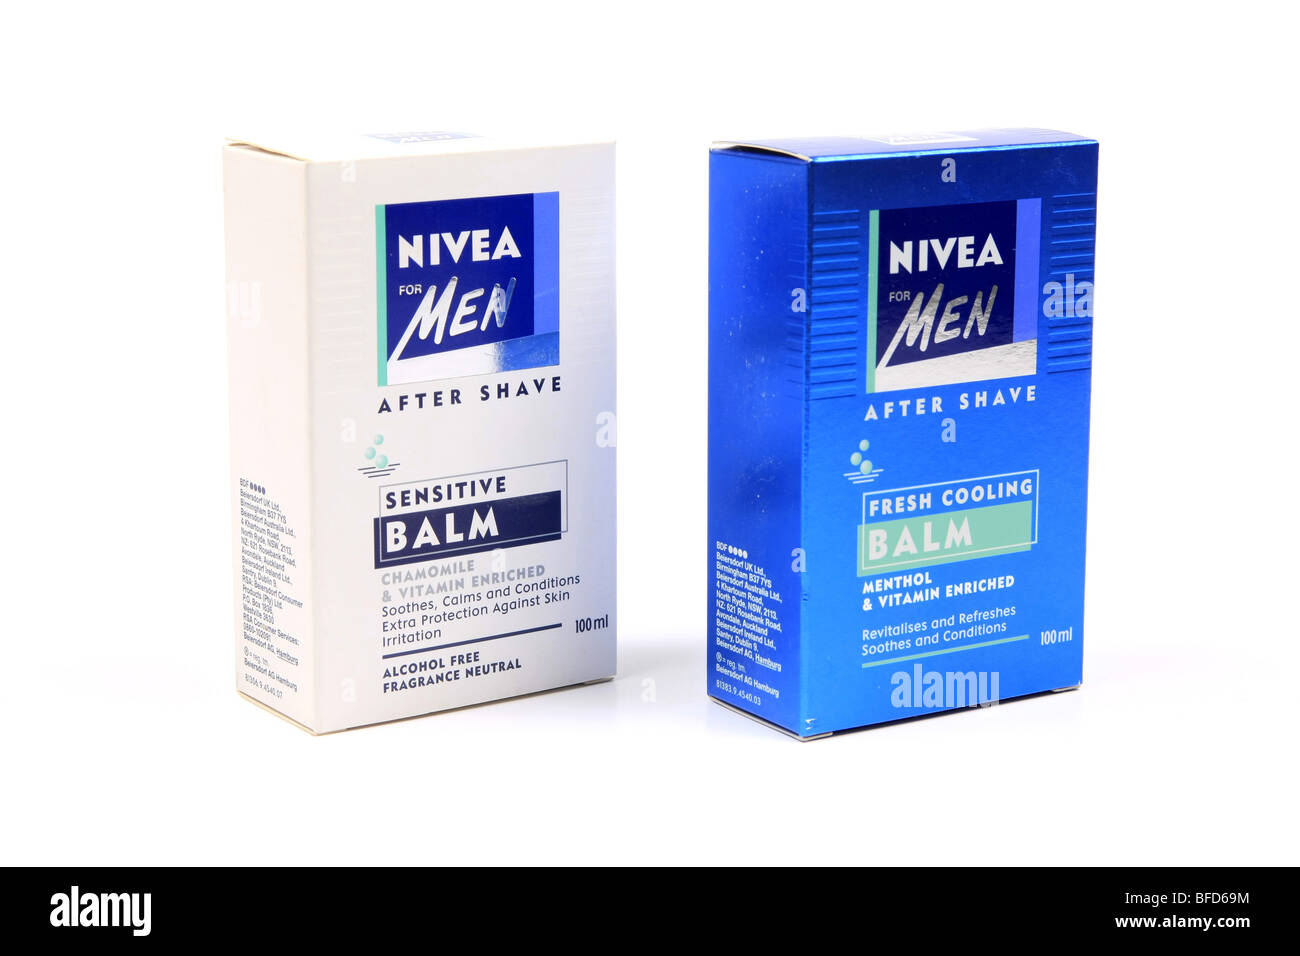 Nivea For men aftershave balm packaging against a white background - Stock Image